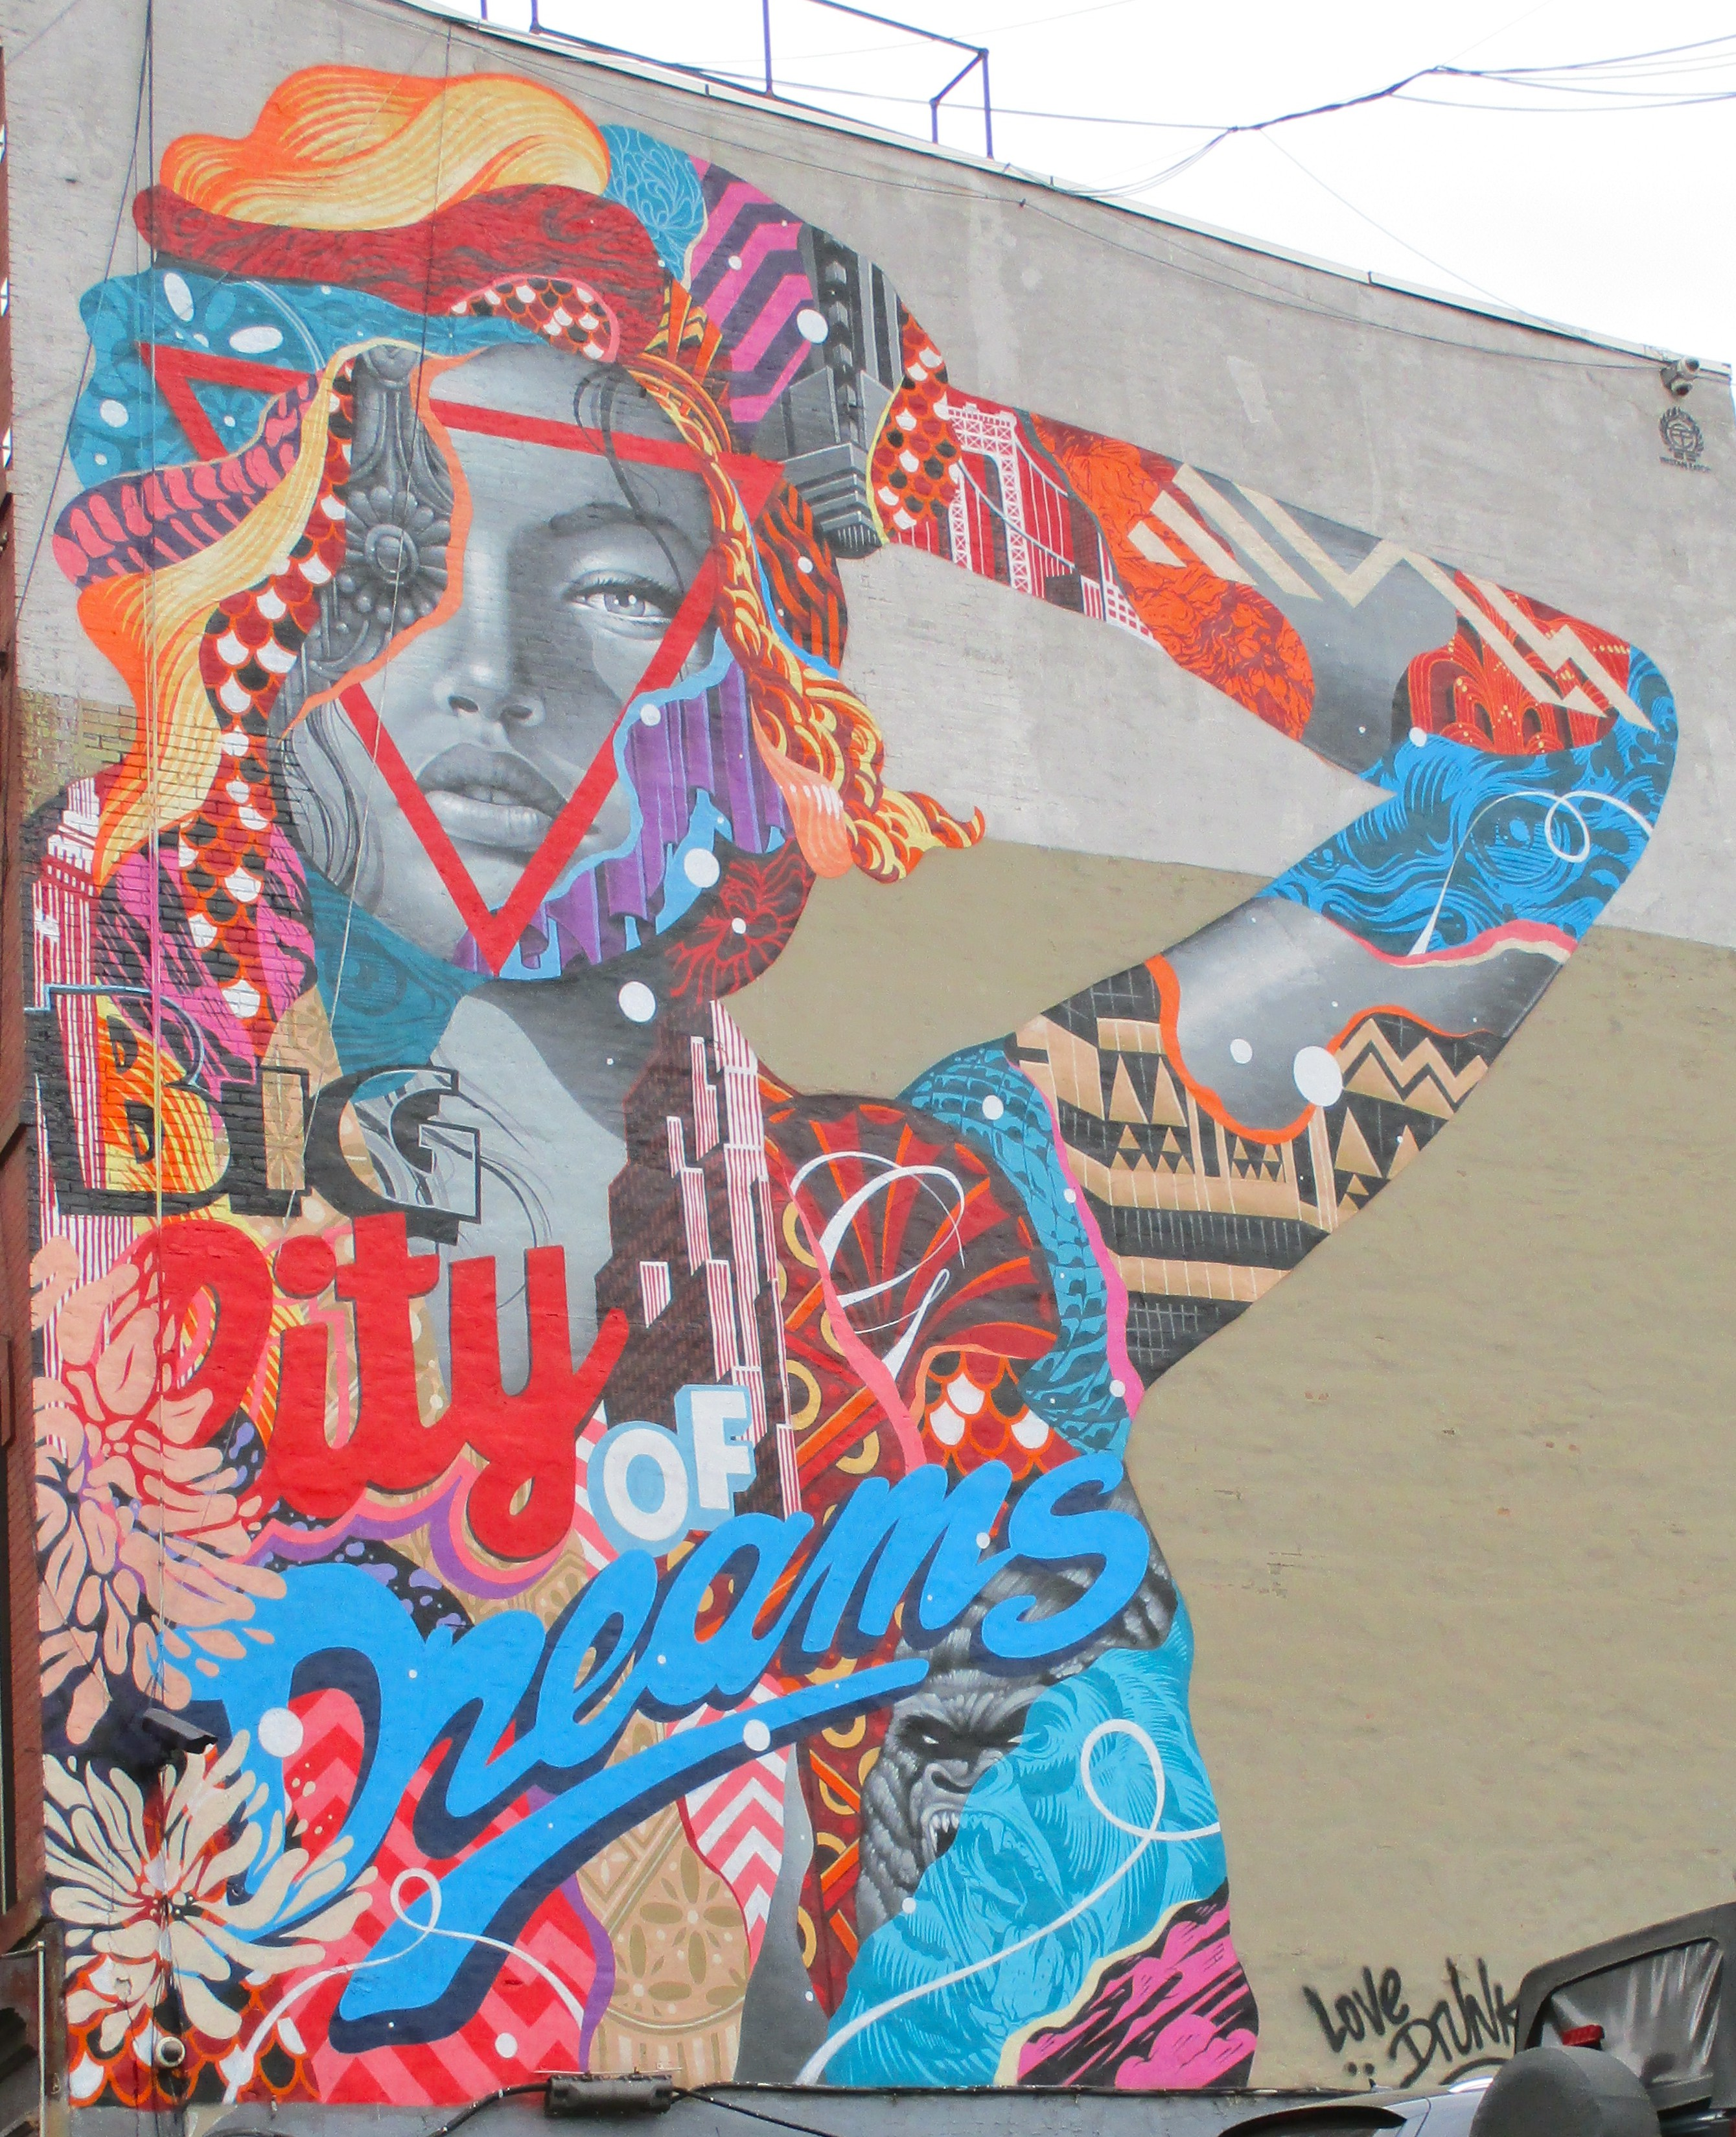 Big city of dreams mural by tristan eaton the worley gig for Mural on broome street